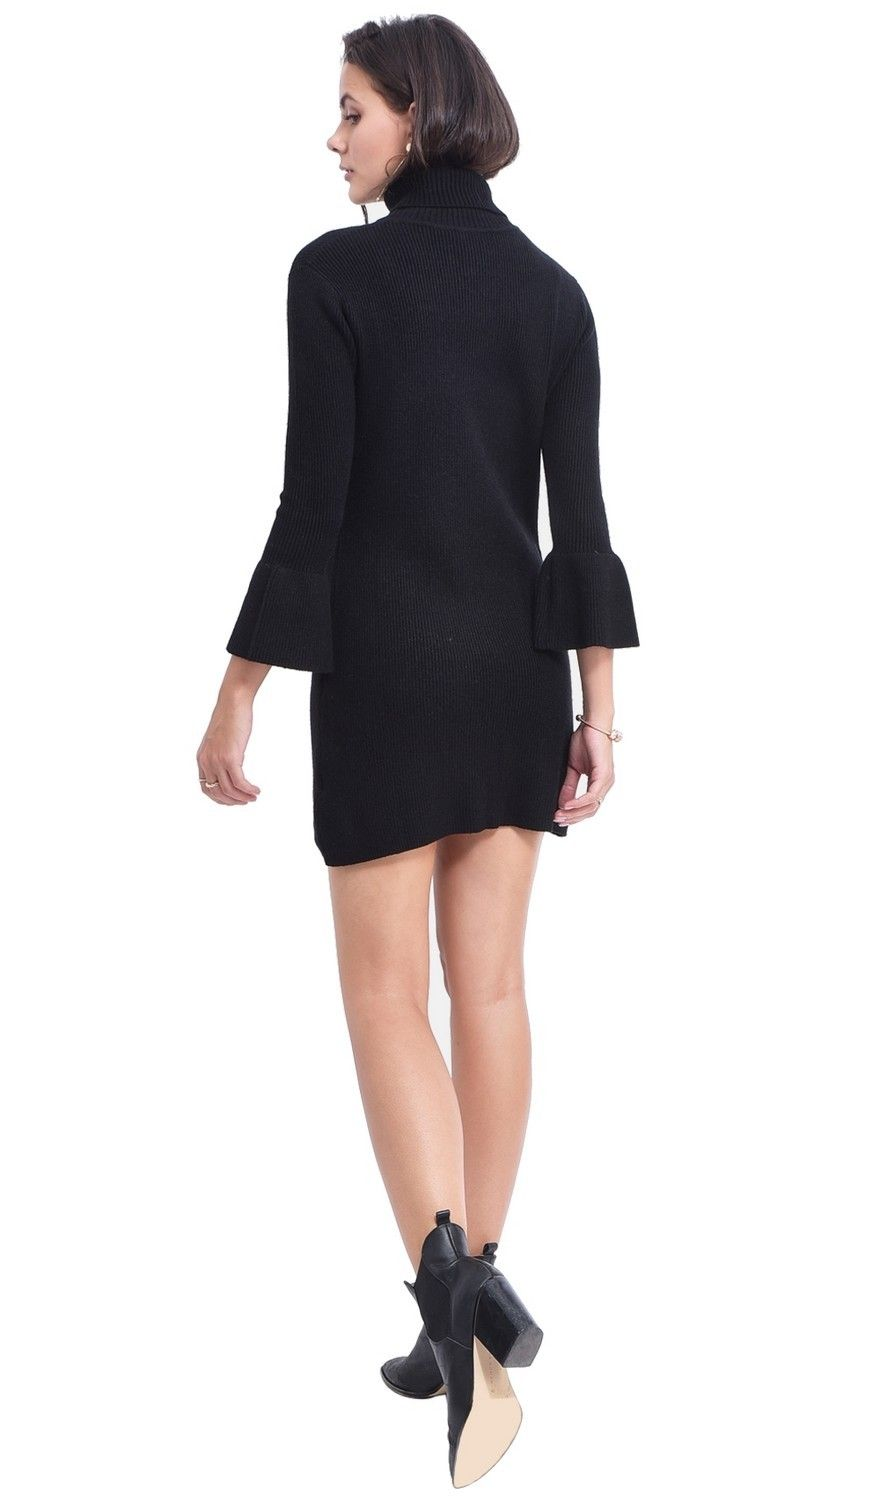 Assuili Roll Neck Dress with Babydoll Sleeves in Black